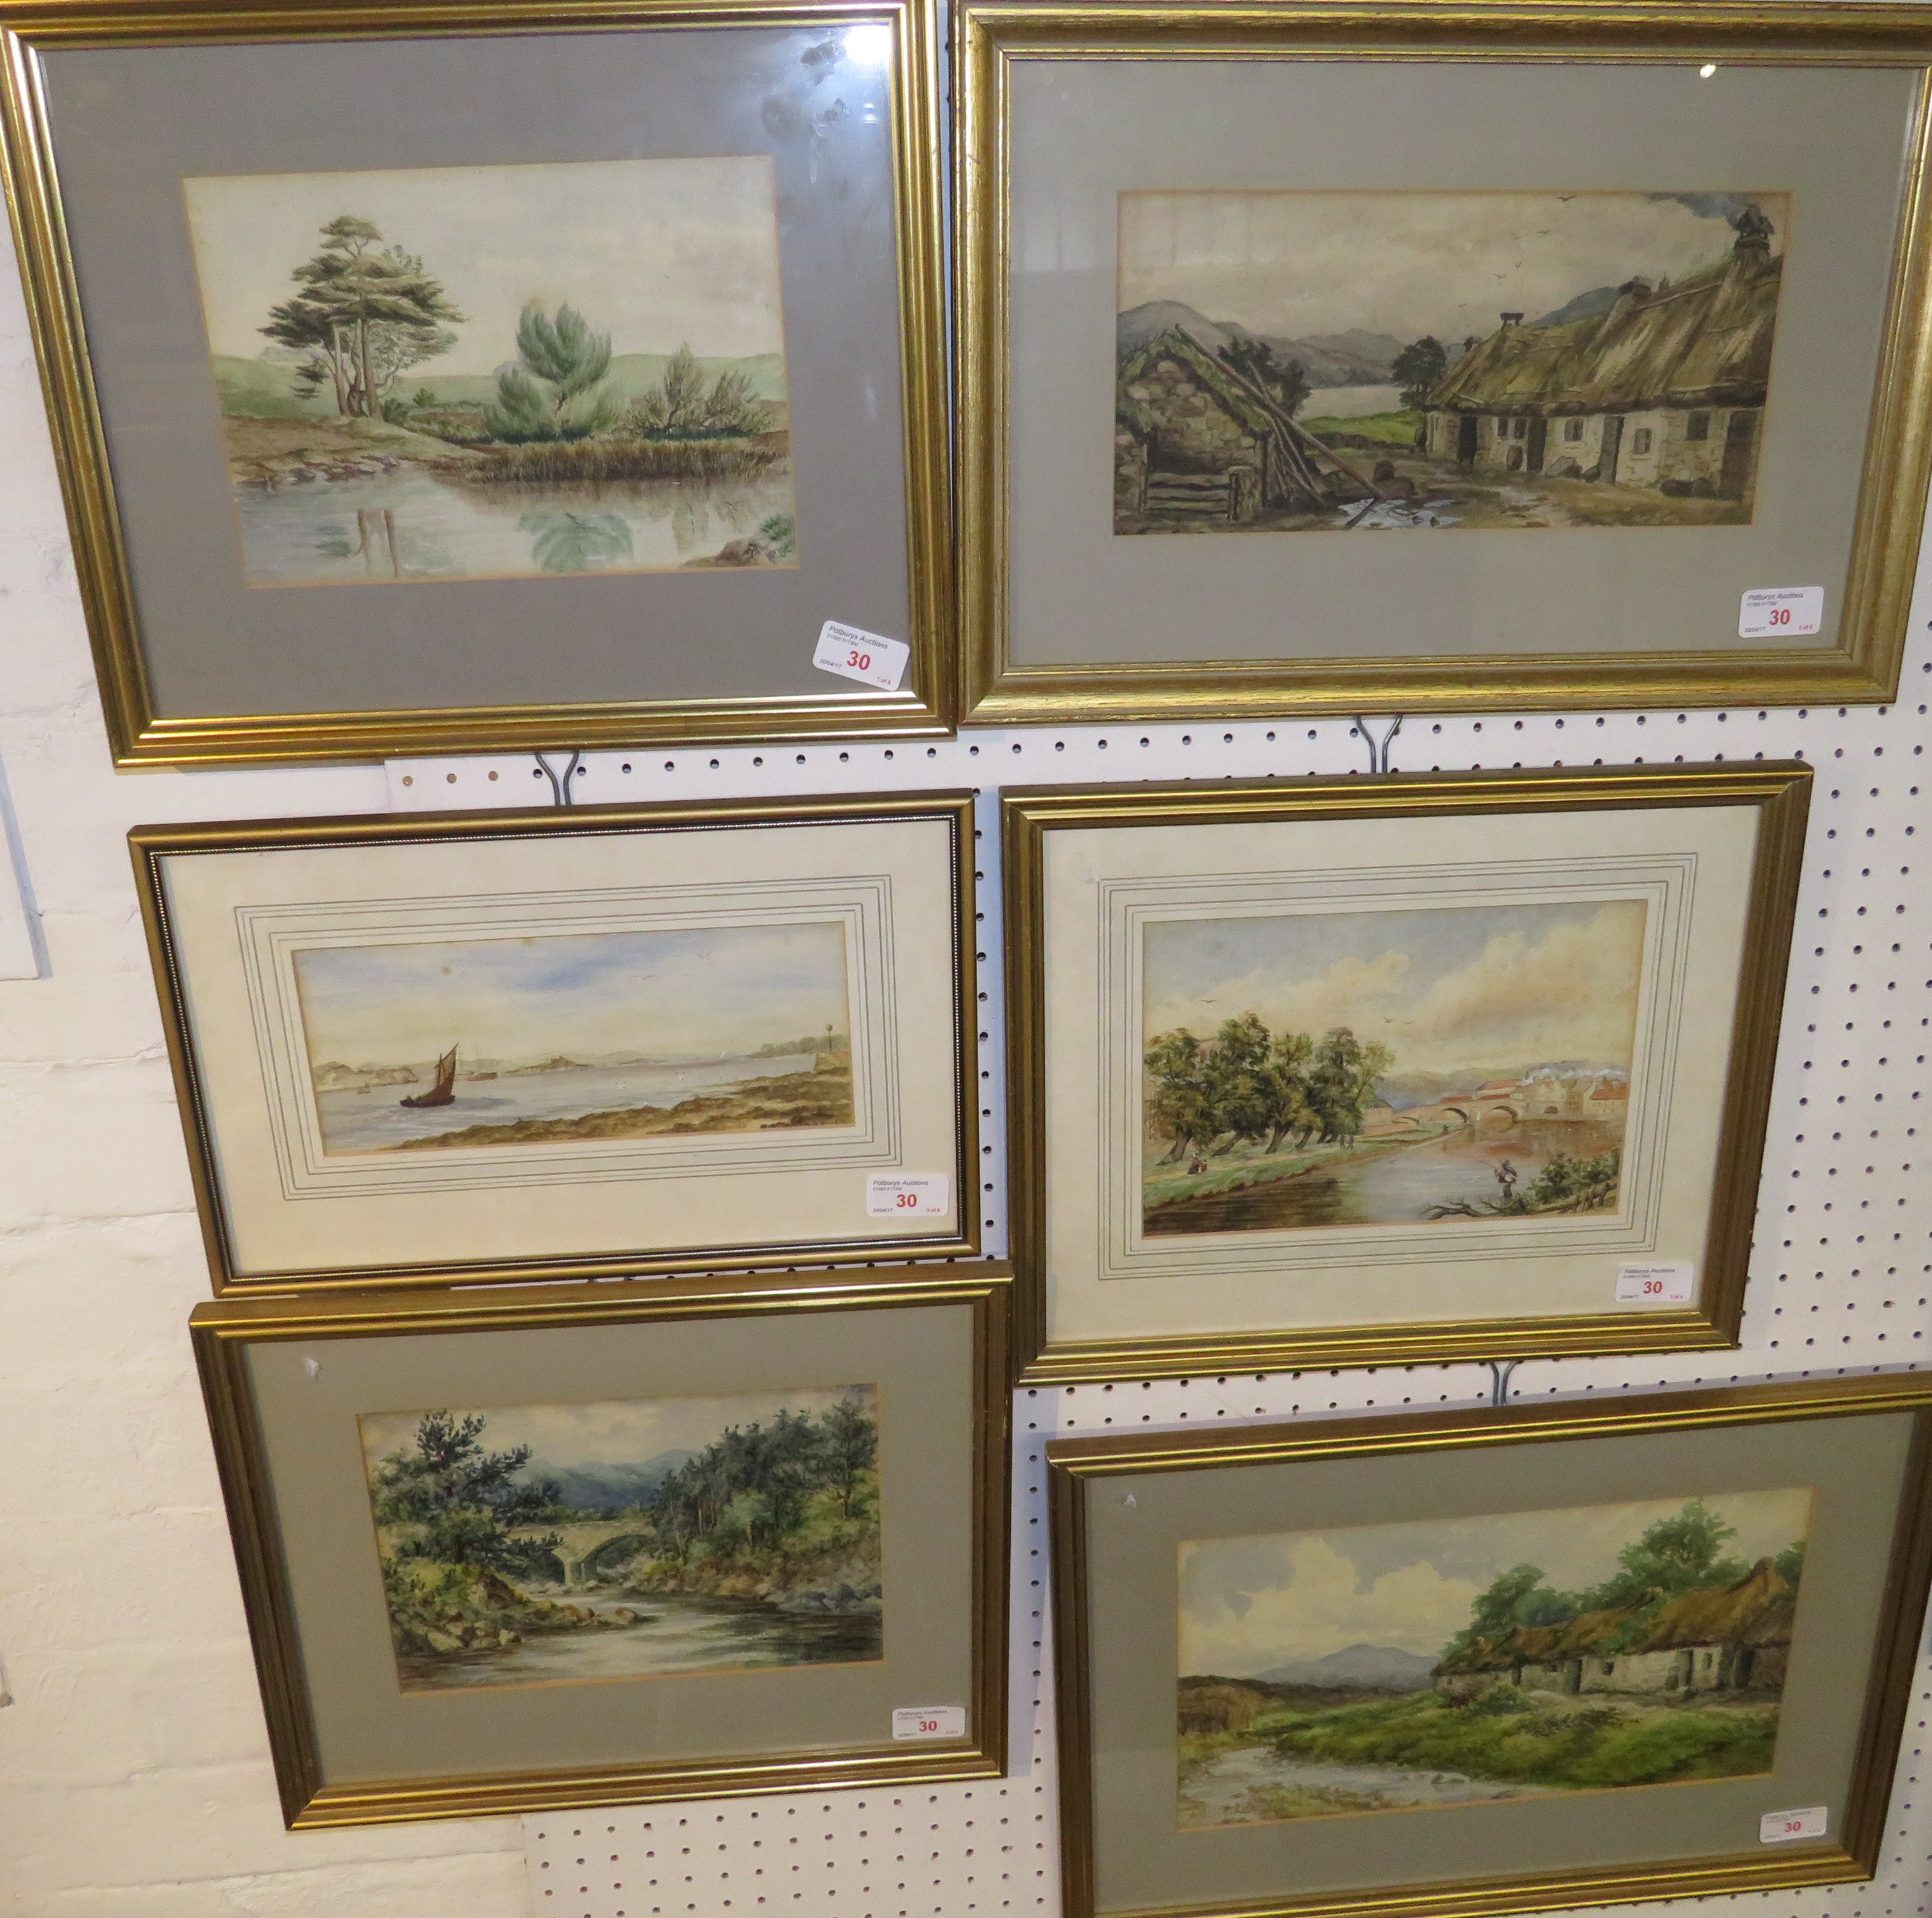 Lot 30 - Six late 19th century watercolour landscapes bearing the monogram AT and one signed Arthur